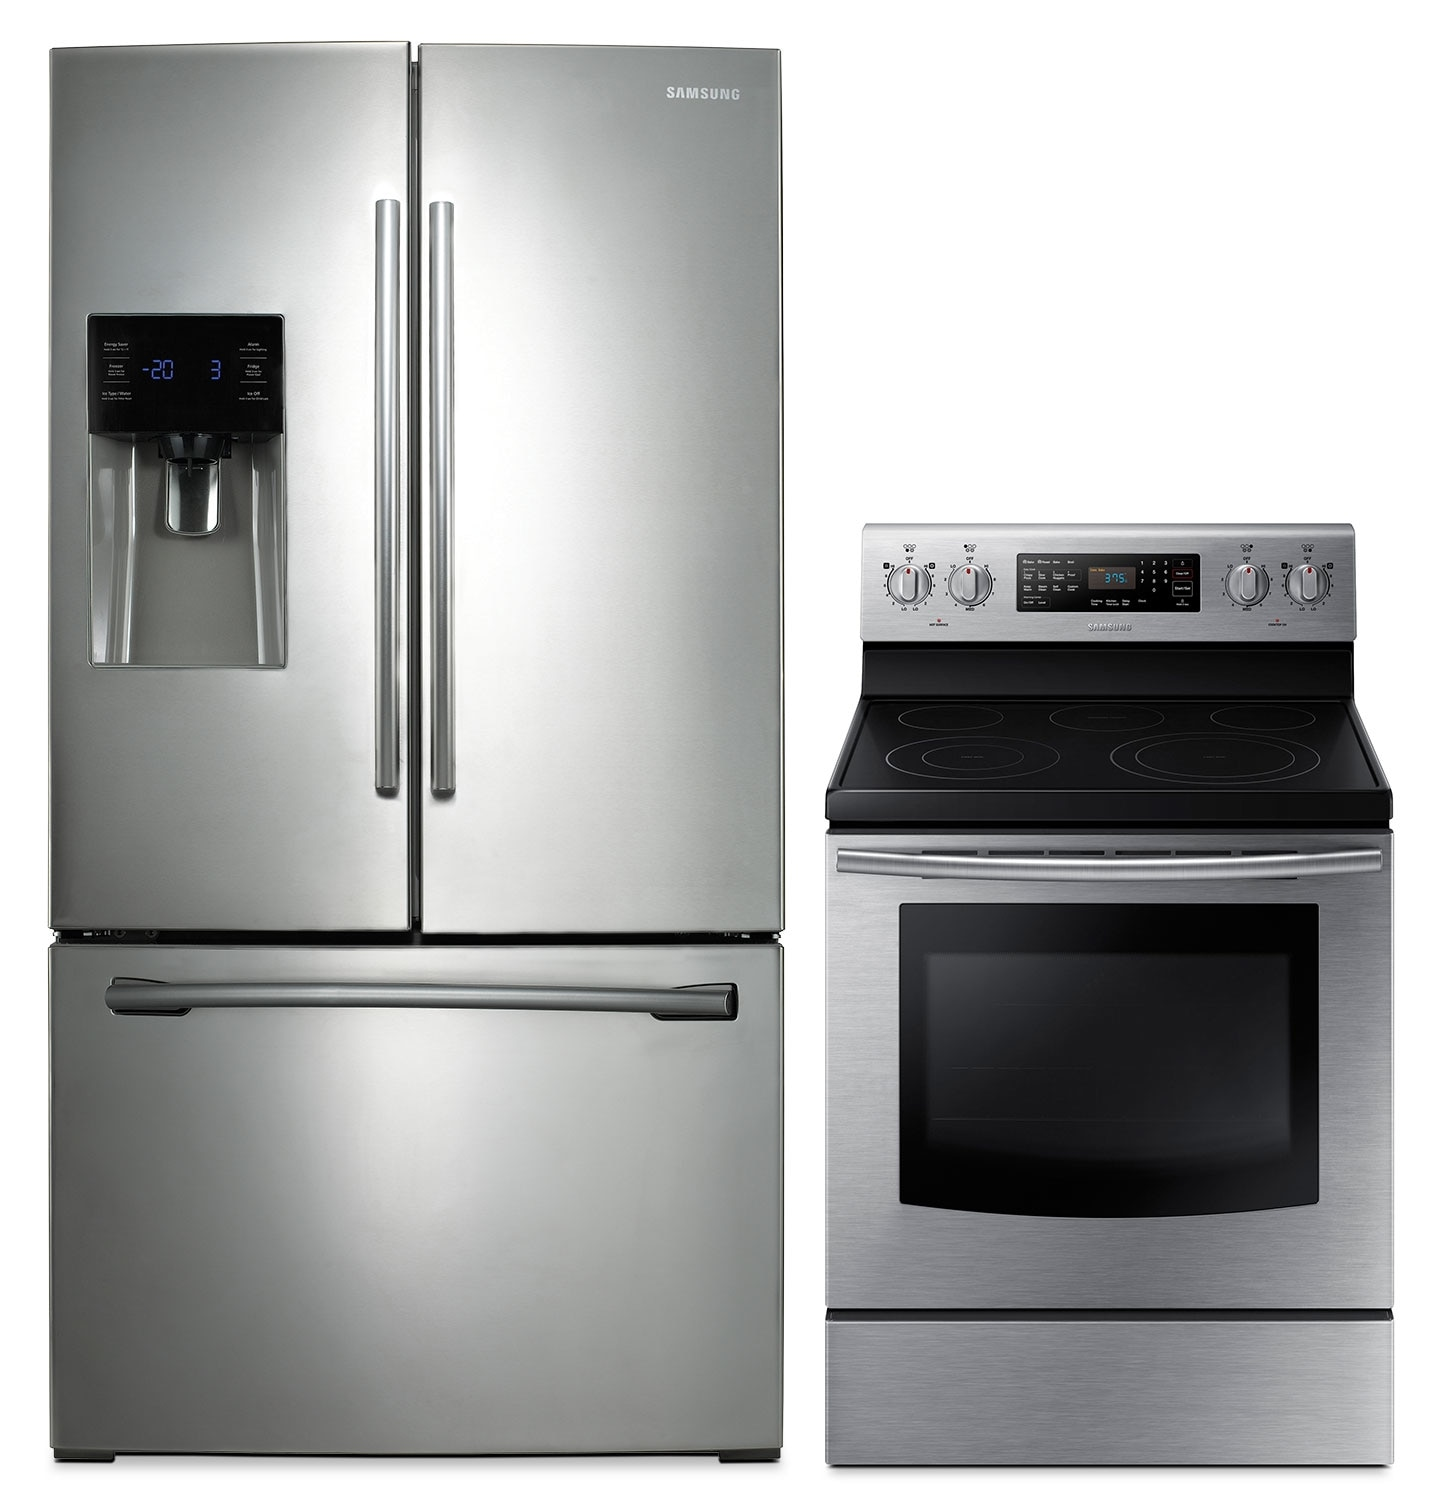 Cooking Products - Samsung 26 Cu. Ft. French Door Refrigerator and 5.9 Cu. Ft. Convection Range Package